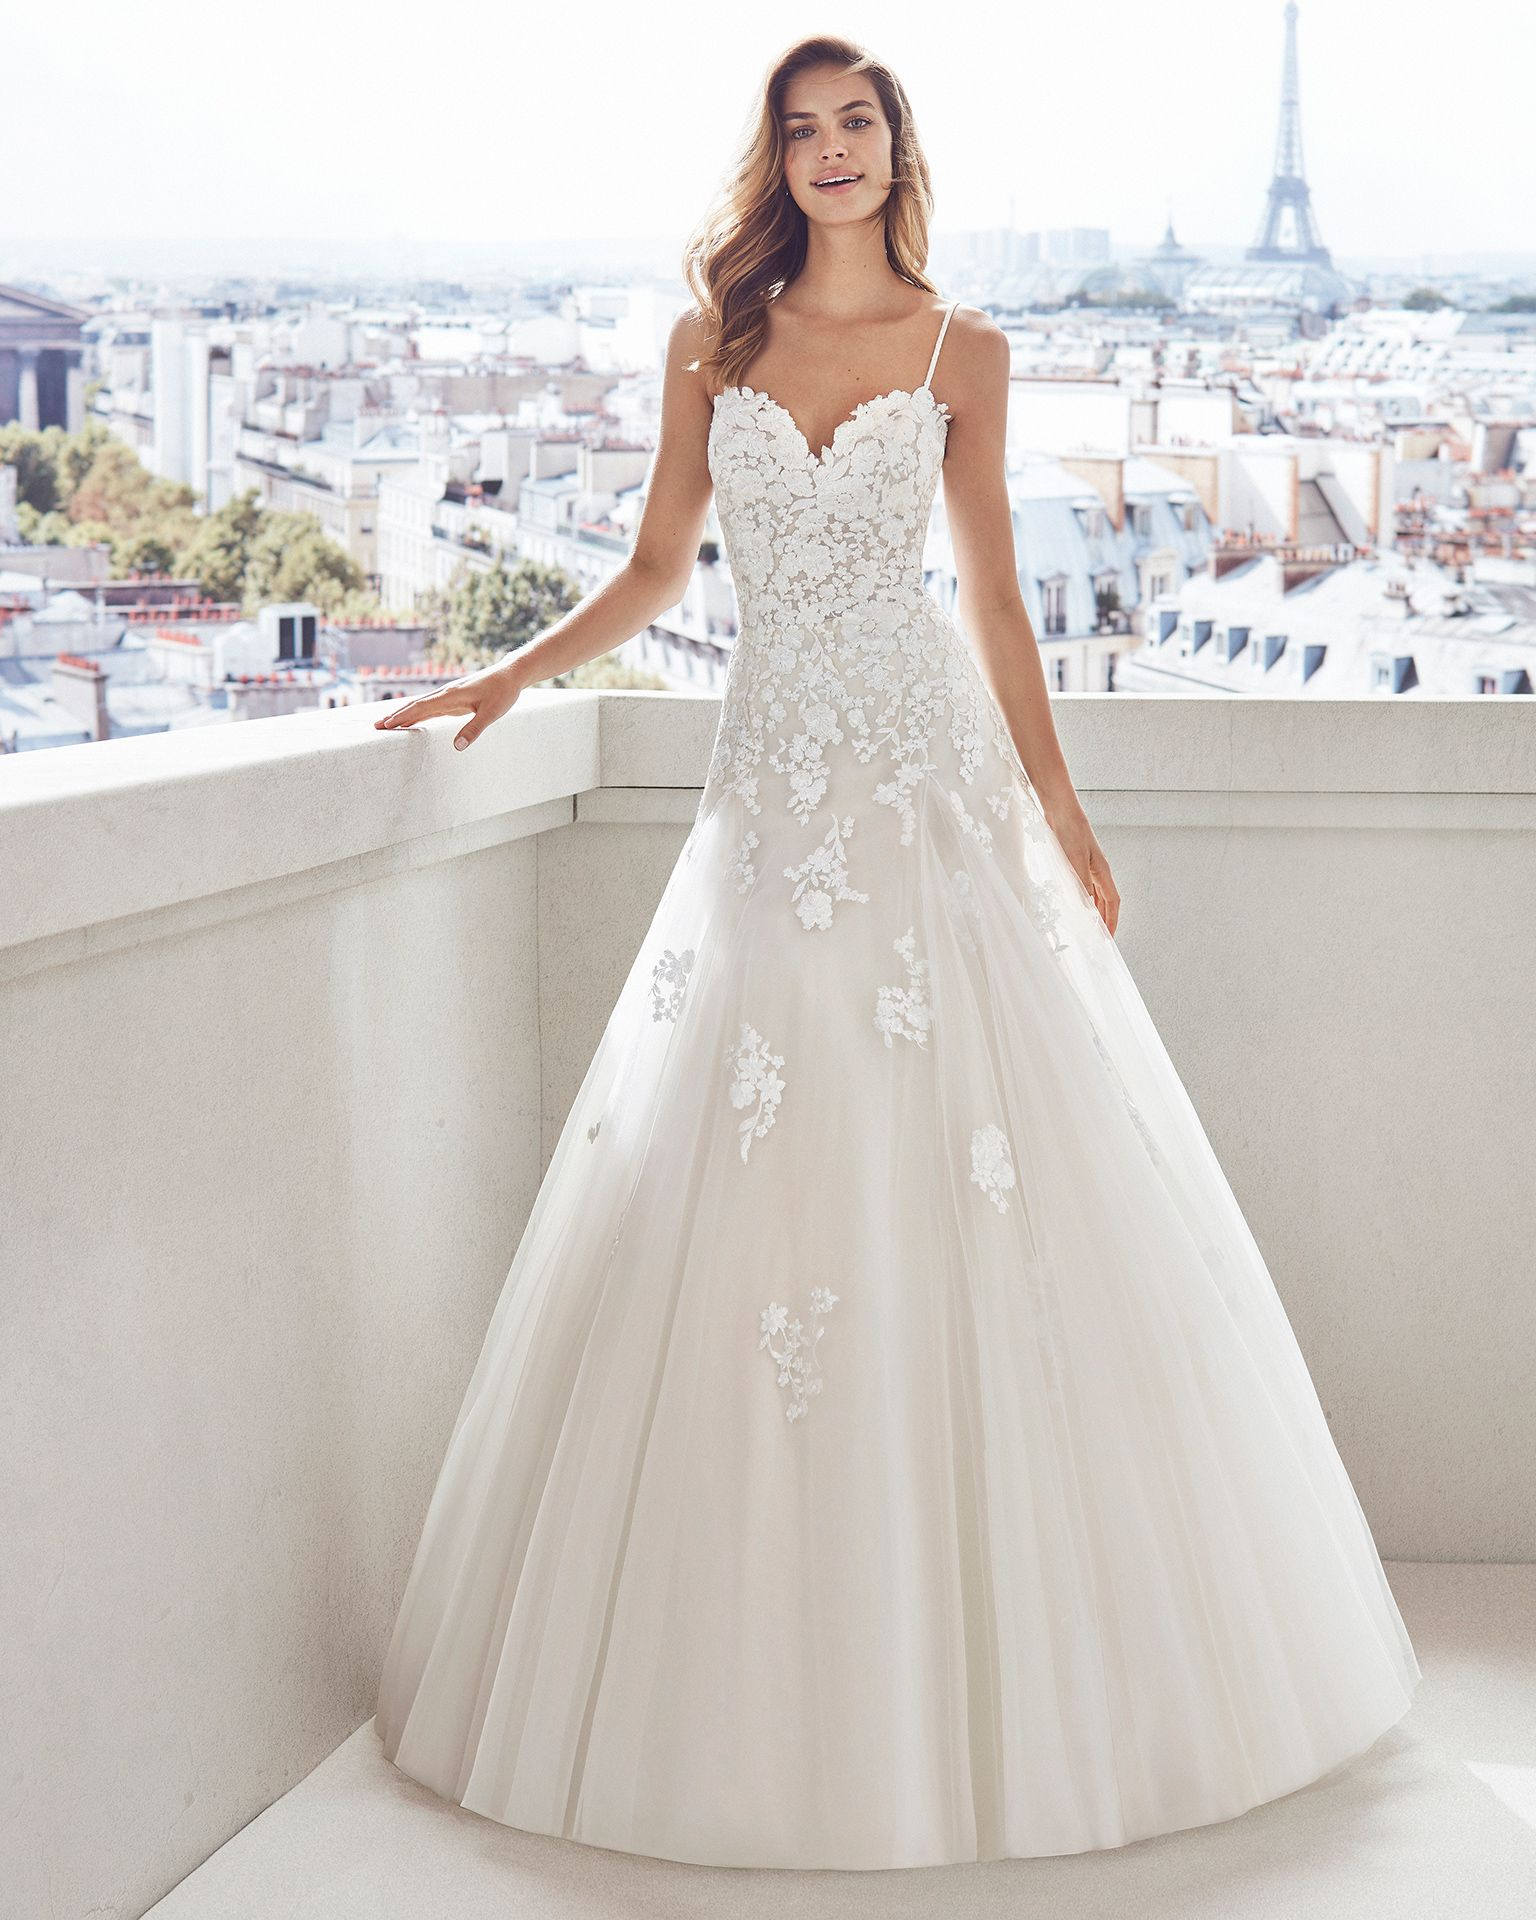 Ivory Lace Bodice Ball Gown Wedding Dress With Sheer Long: Lace And Tulle Princess-style Wedding Dress. Semi